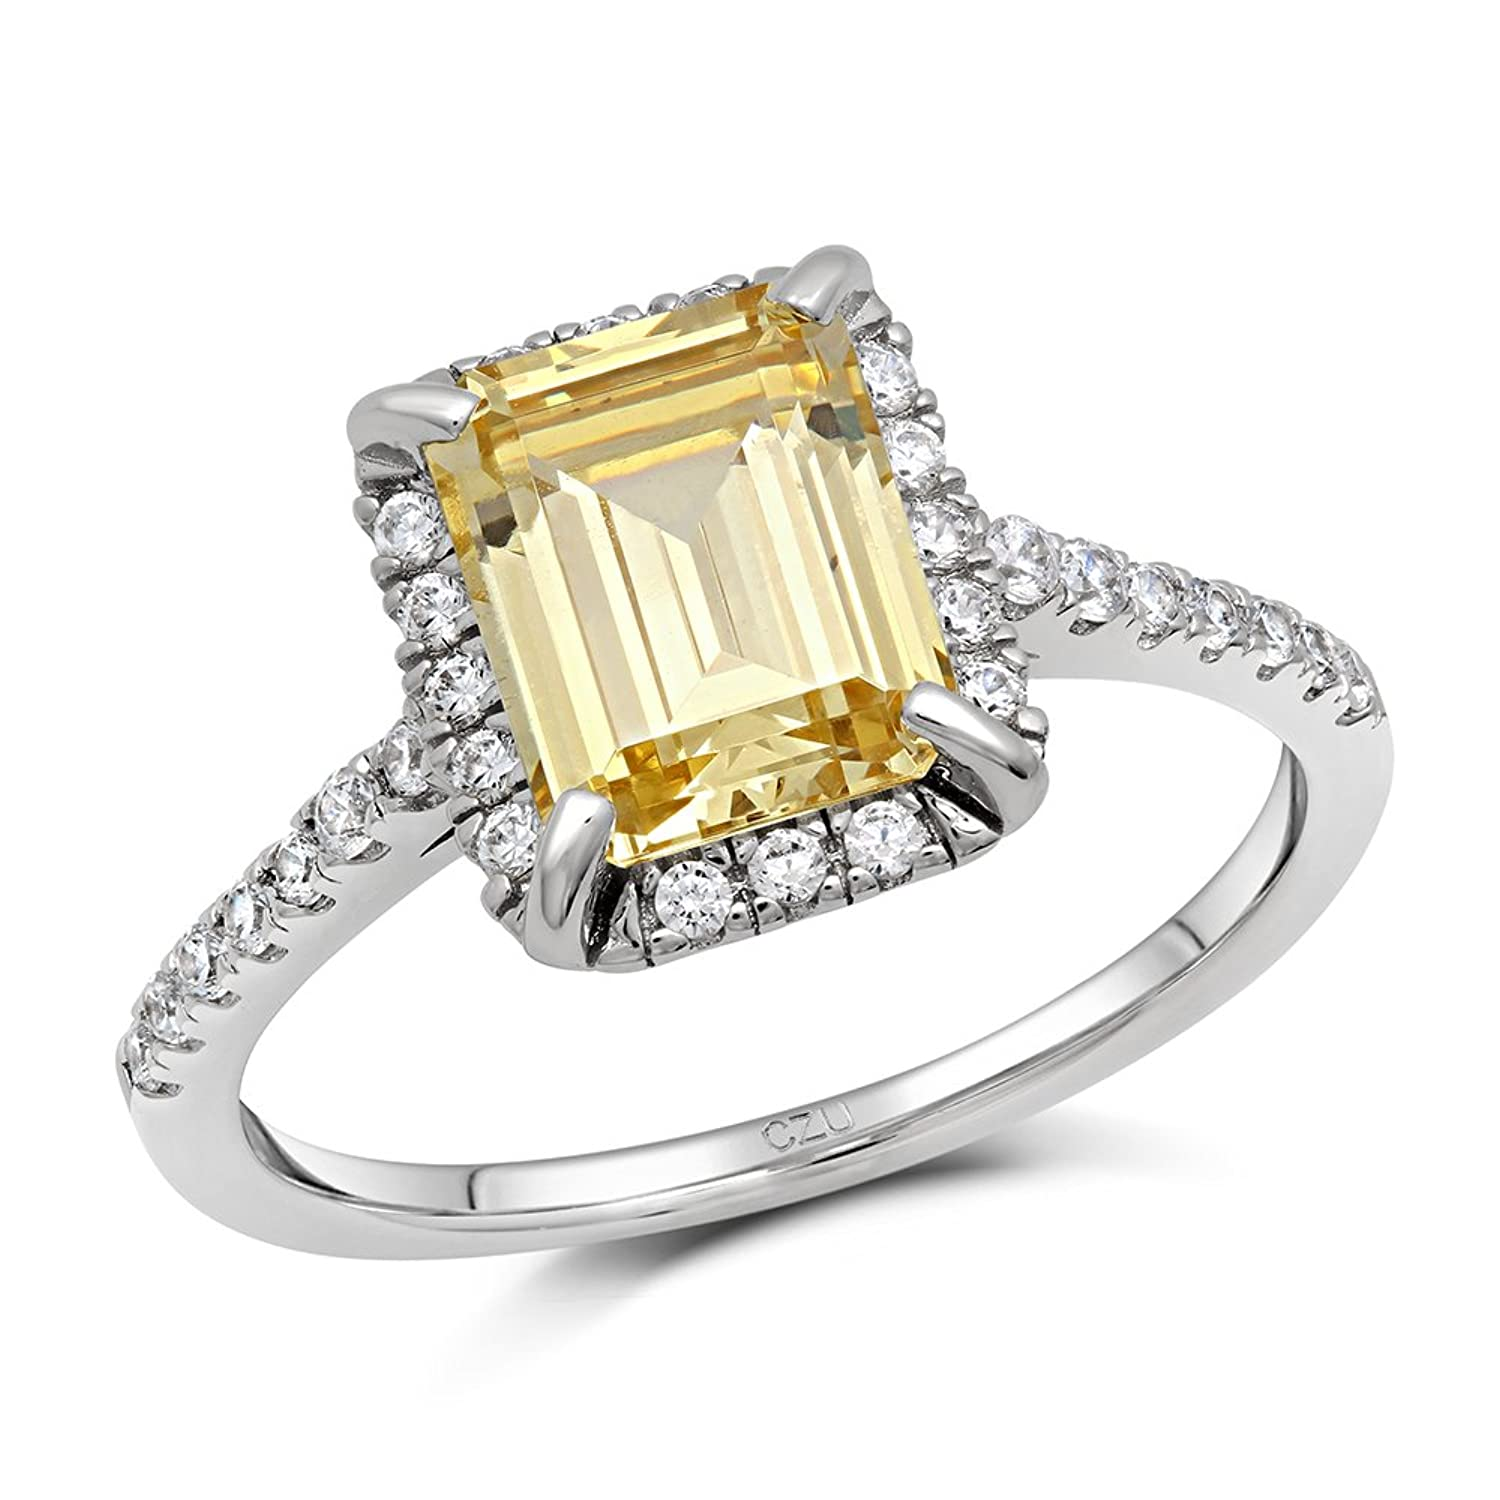 Emerald Cut Canary Yellow Cubic Zirconia Engagement Ring in Solid Sterling Silver